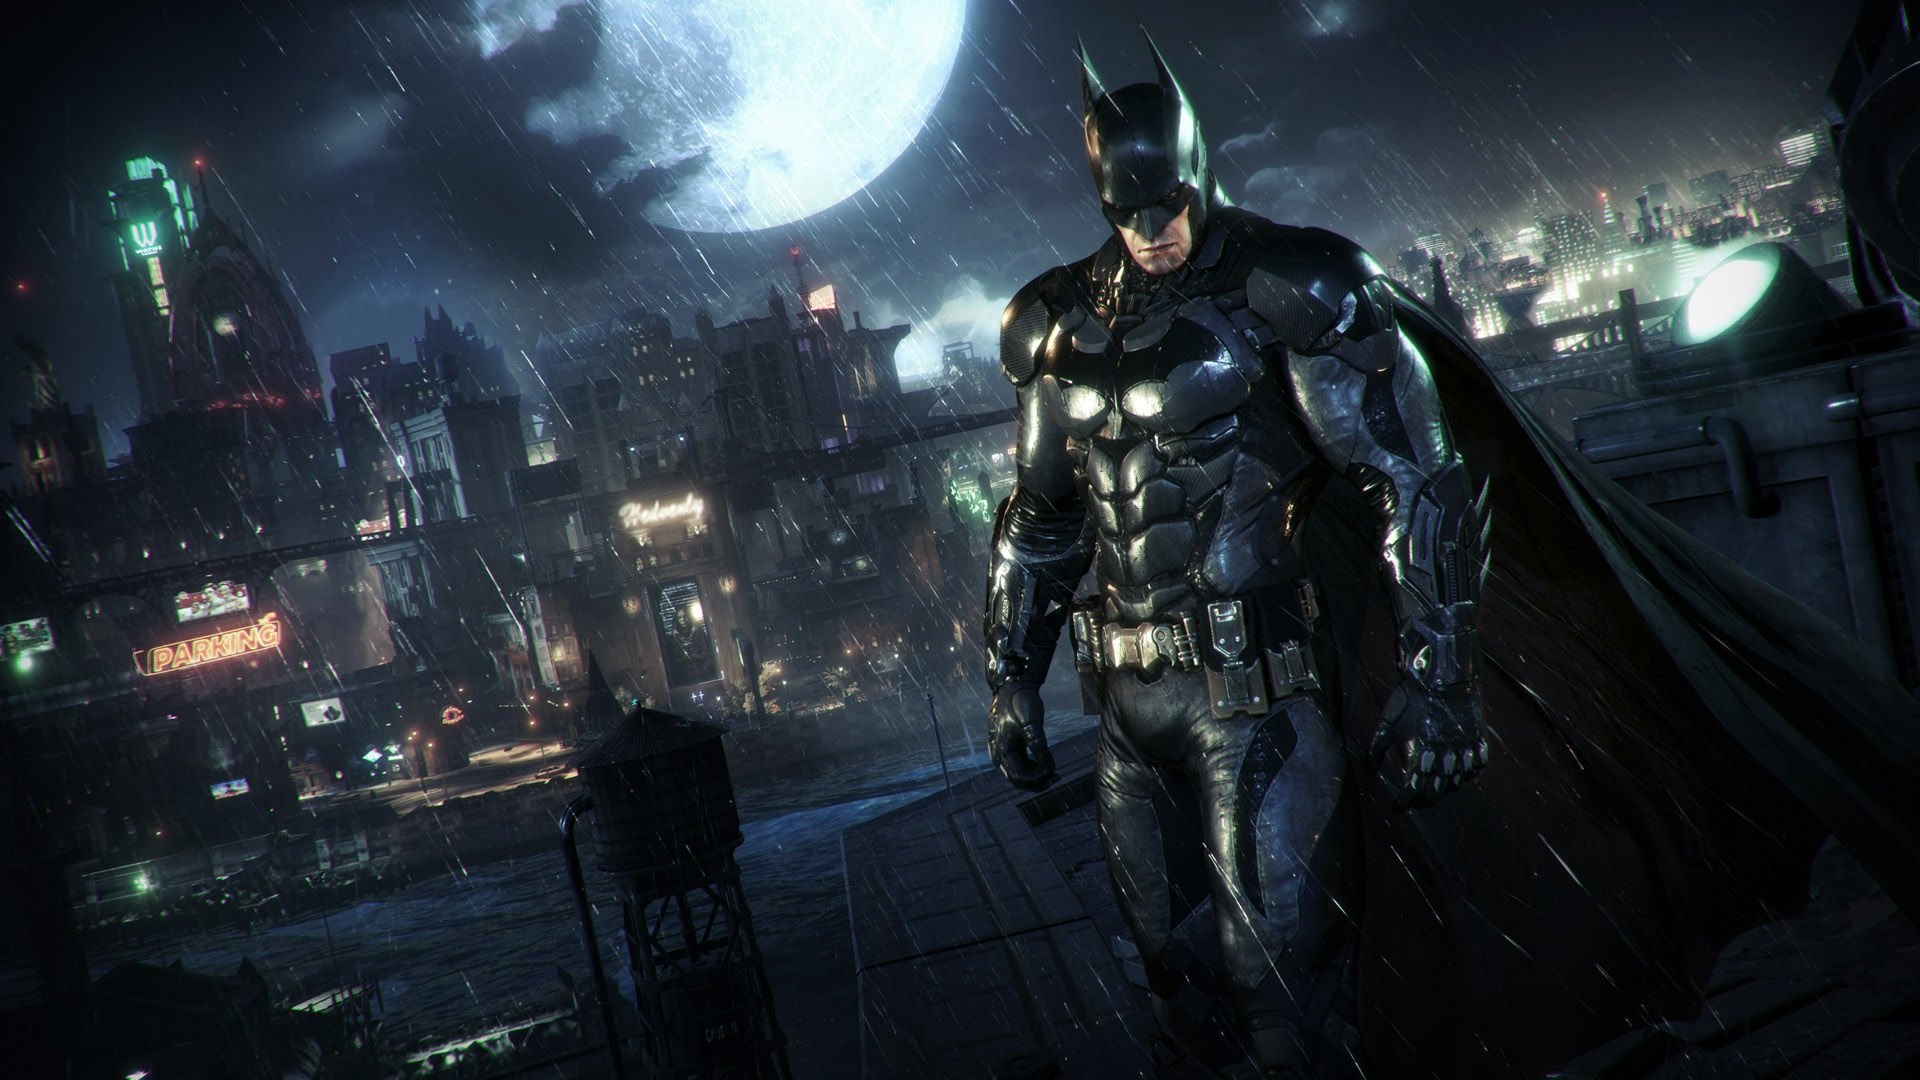 batman_arkham_knight_new_screenshot3_pre_order_bonuses_rocksteady_batmobile1.jpg1